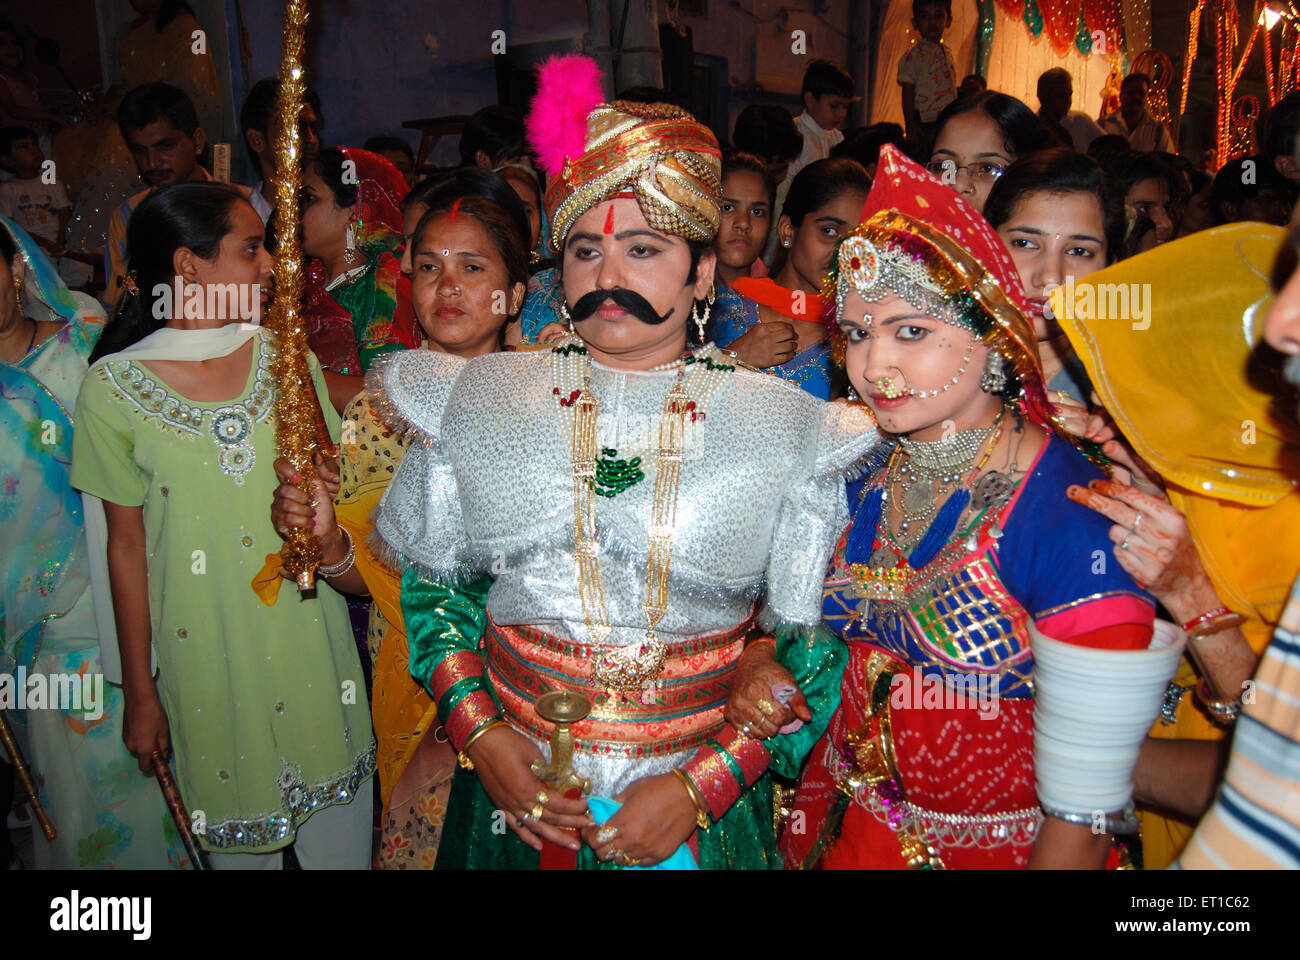 Two women in disguise of bridegroom and bride on Dheenga Gavar festival ; Jodhpur ; Rajasthan ; India NO MR - Stock Image